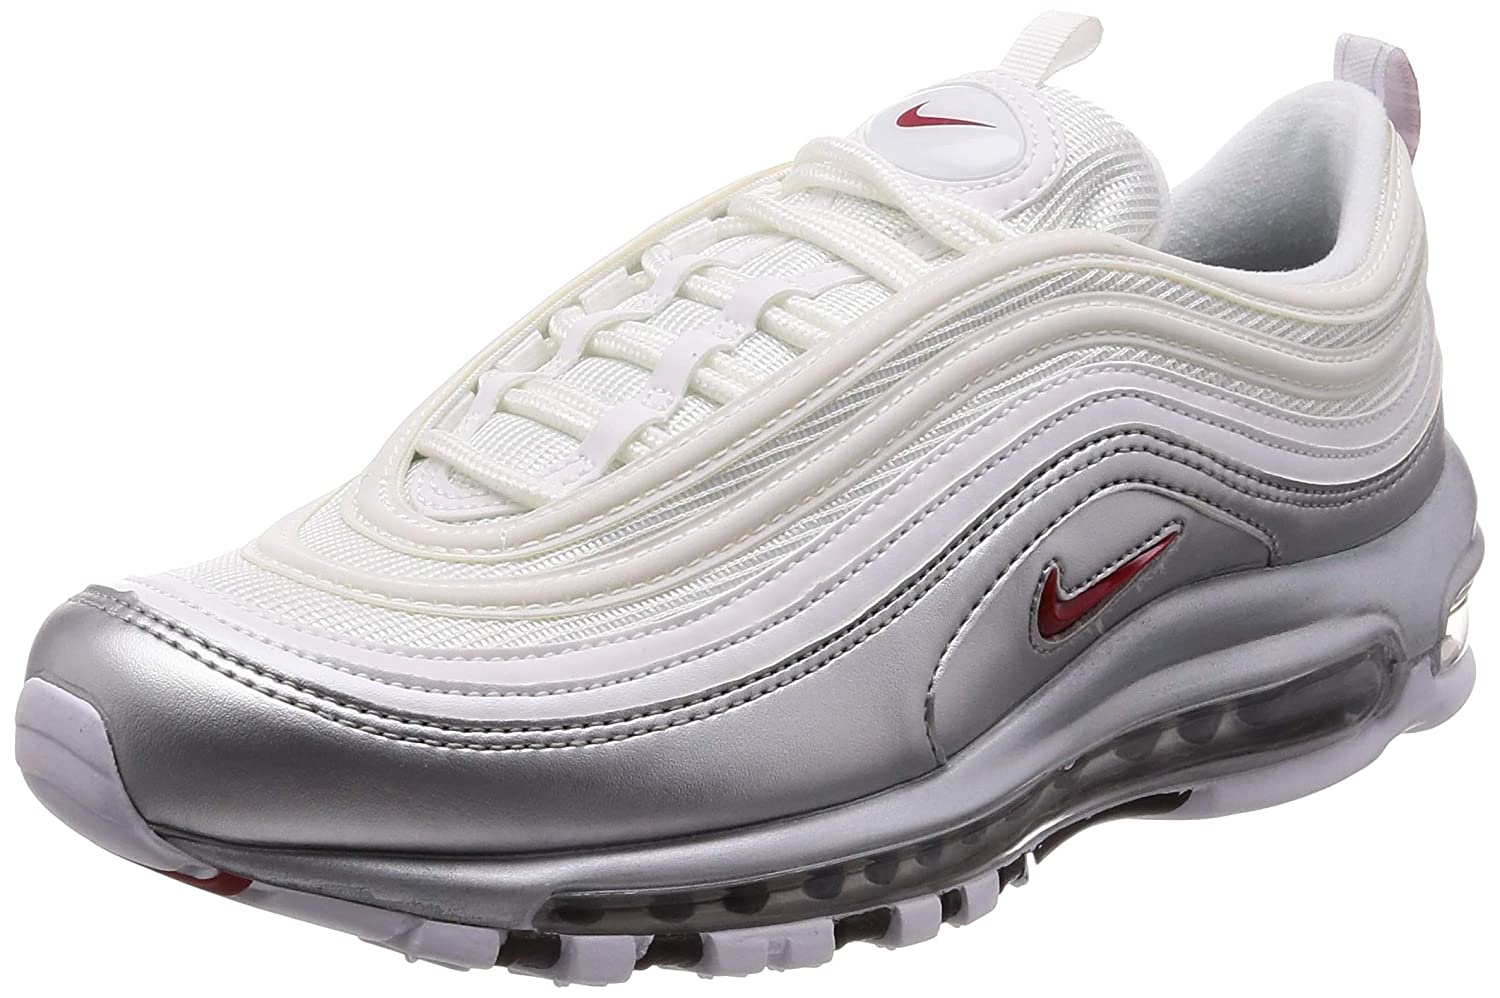 new arrival 37c1a 651fc Nike Mens Air Max 97 QS White/Varsity-Red Synthetic